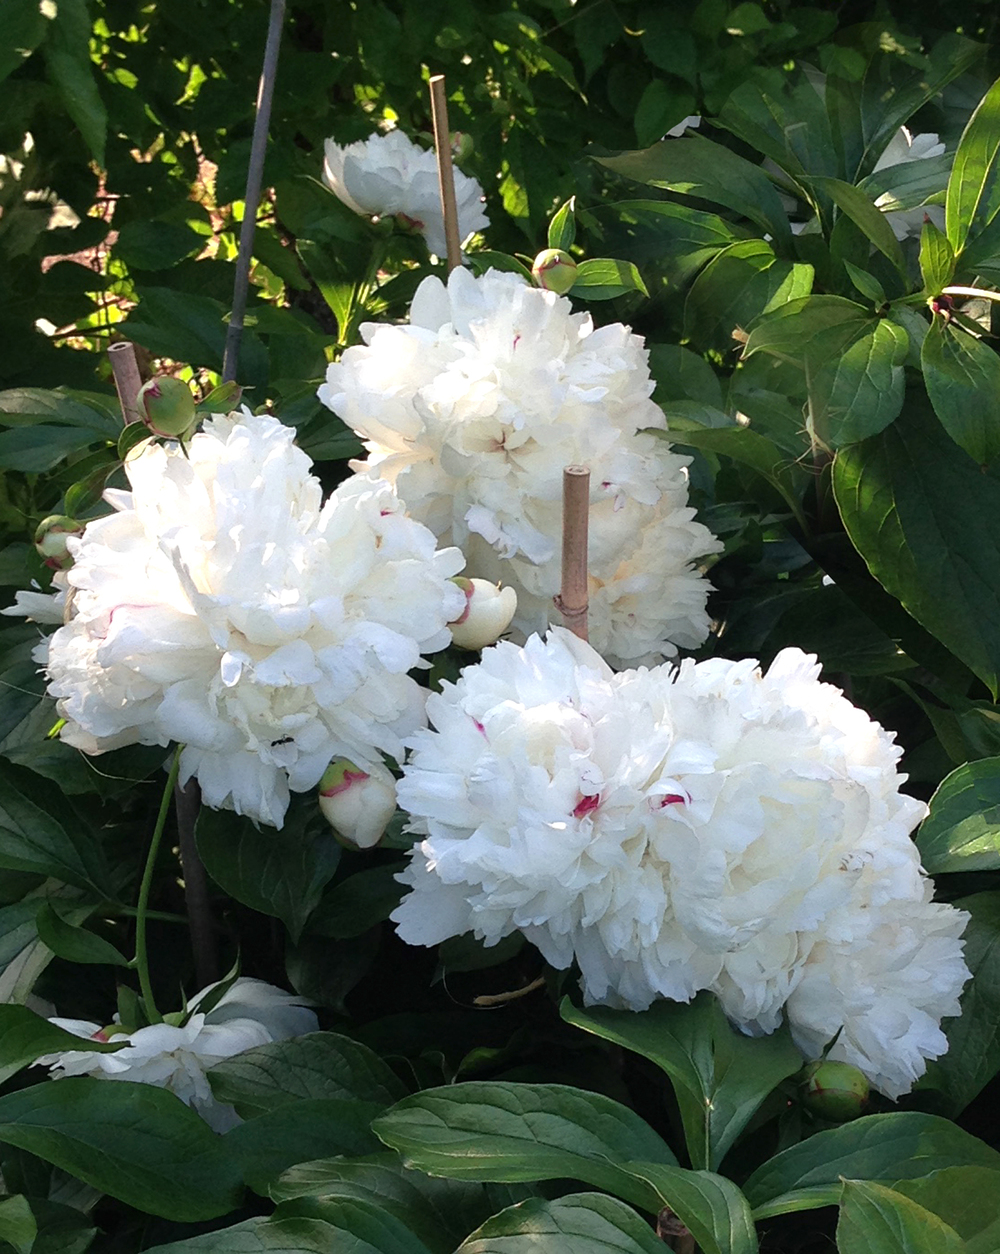 White Peonies in Garden